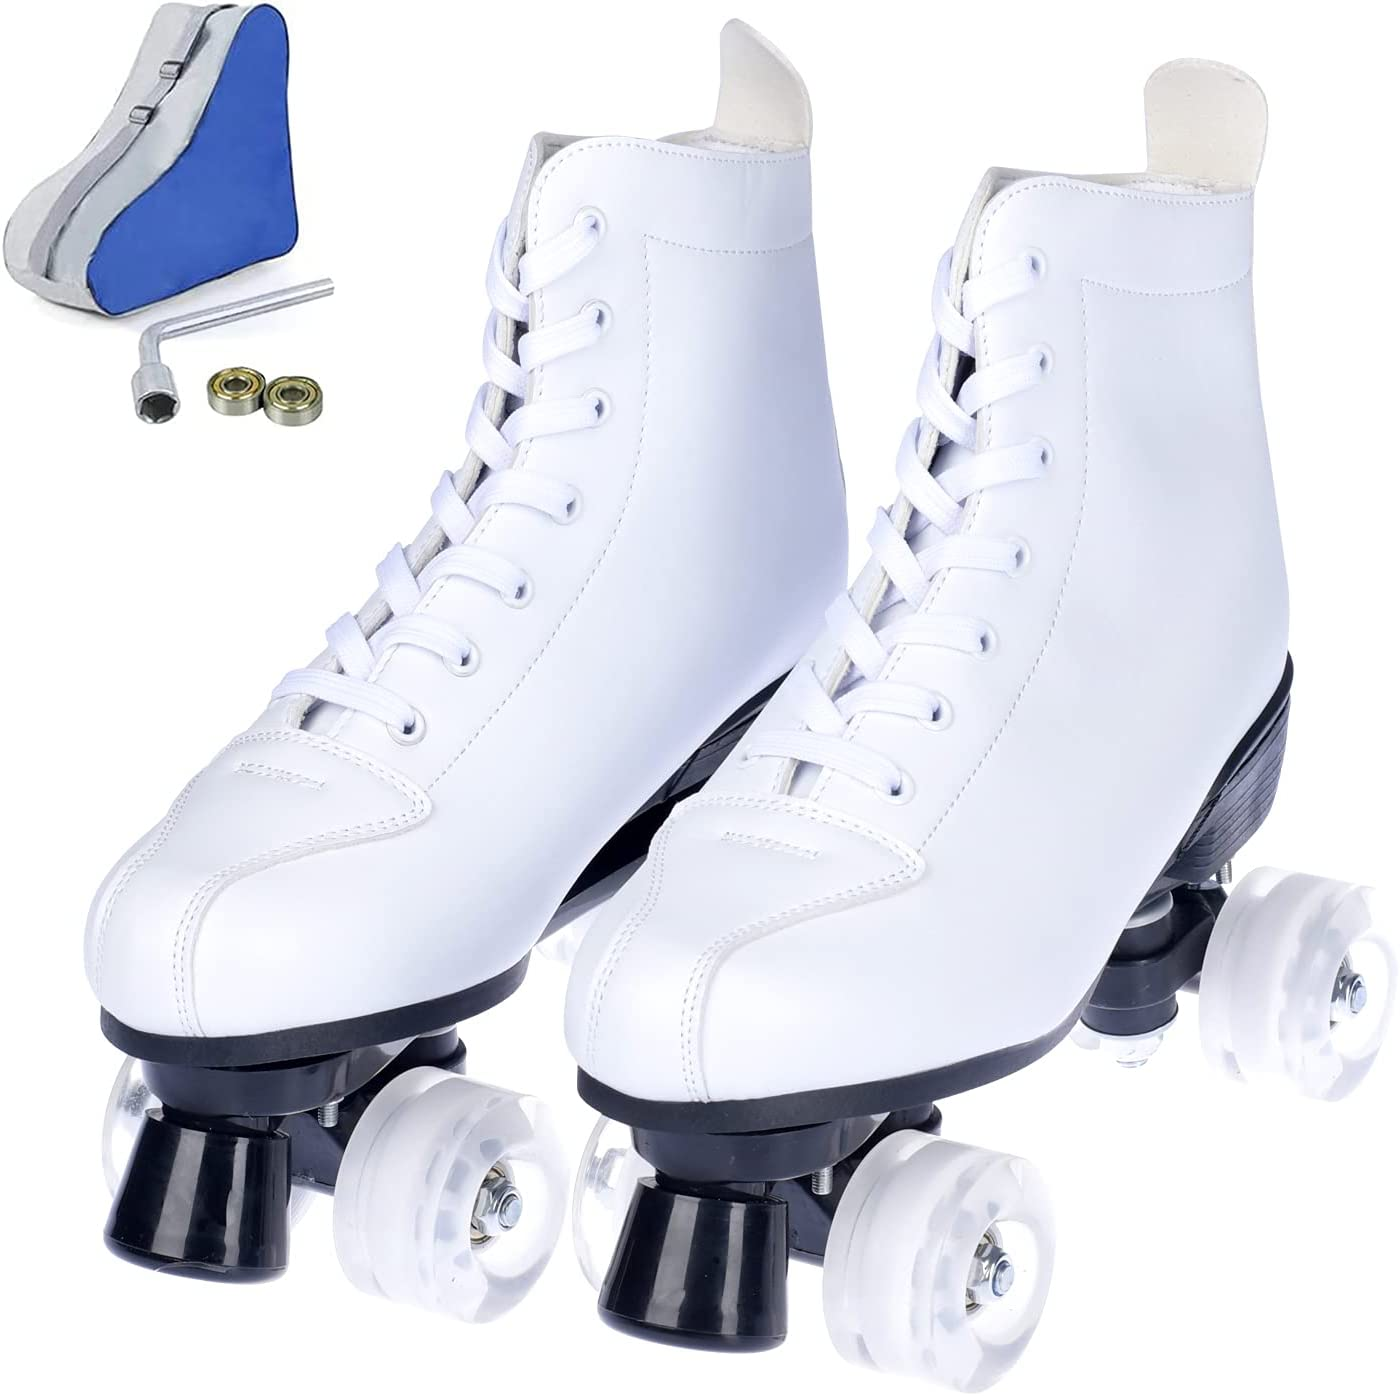 Roller Skates for Adults Miami Mall Women and Men High-top Price reduction Leather Shin PU